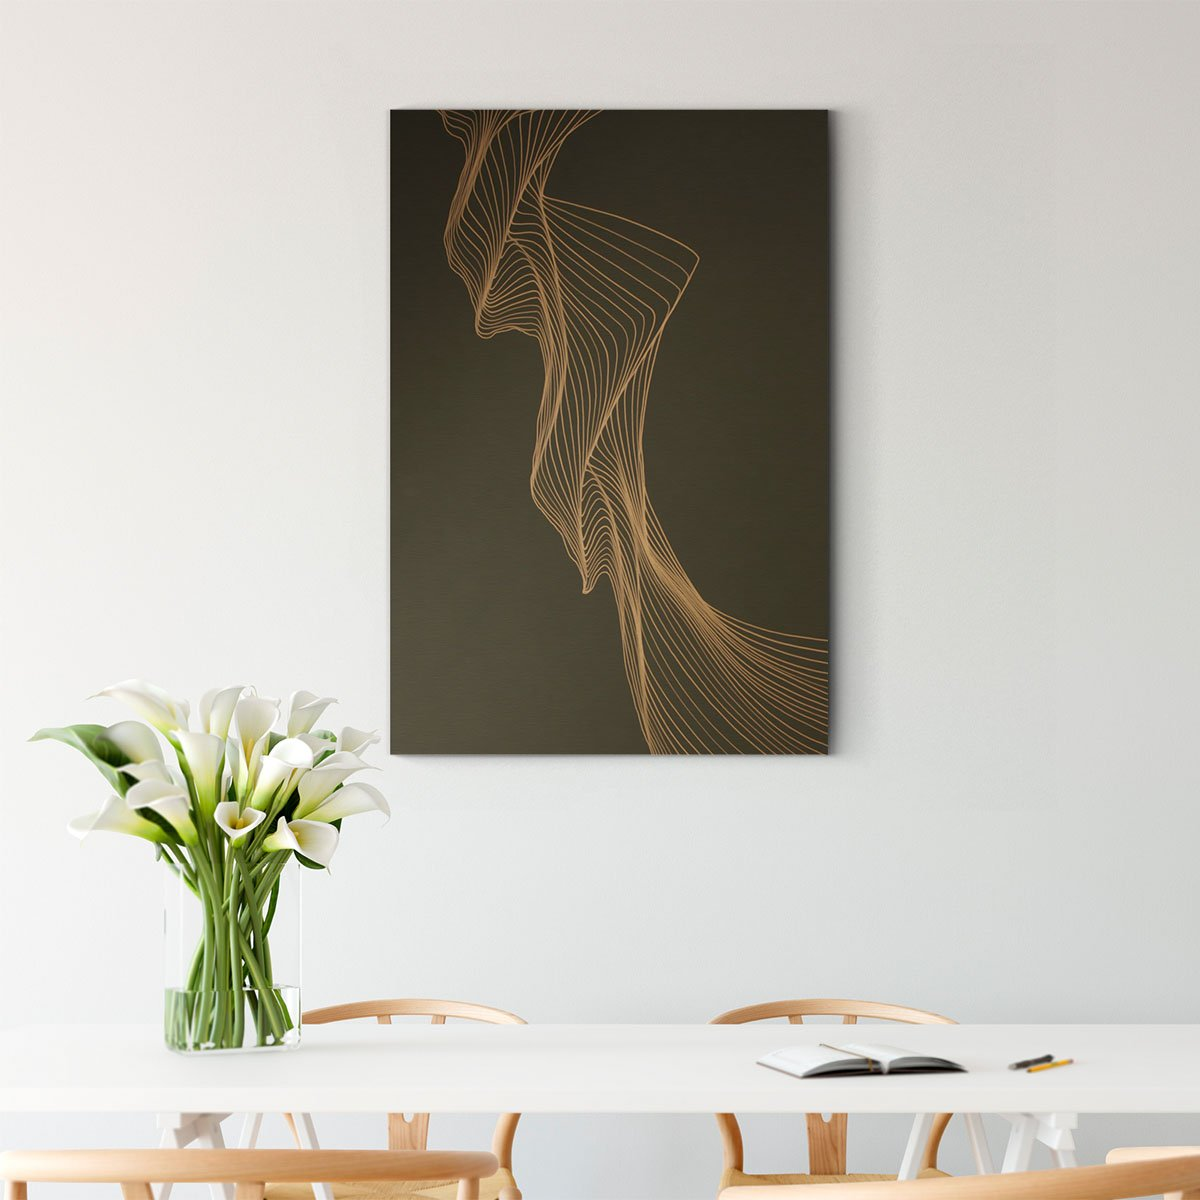 Rotating lines abstract decorative painting 001